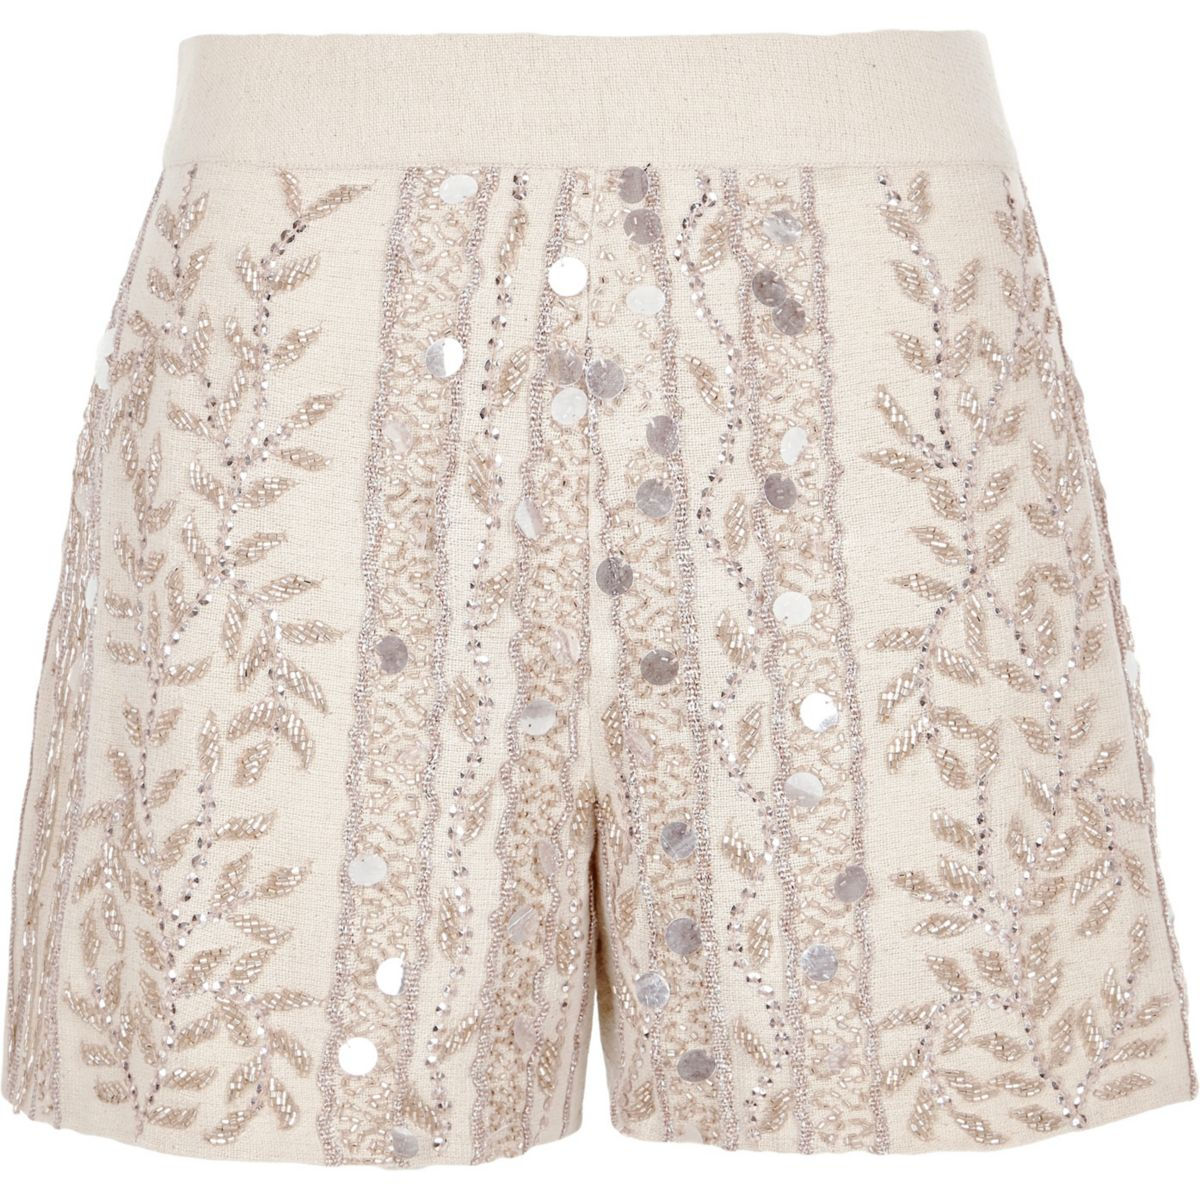 Cream Bead Embellished Shorts by River Island